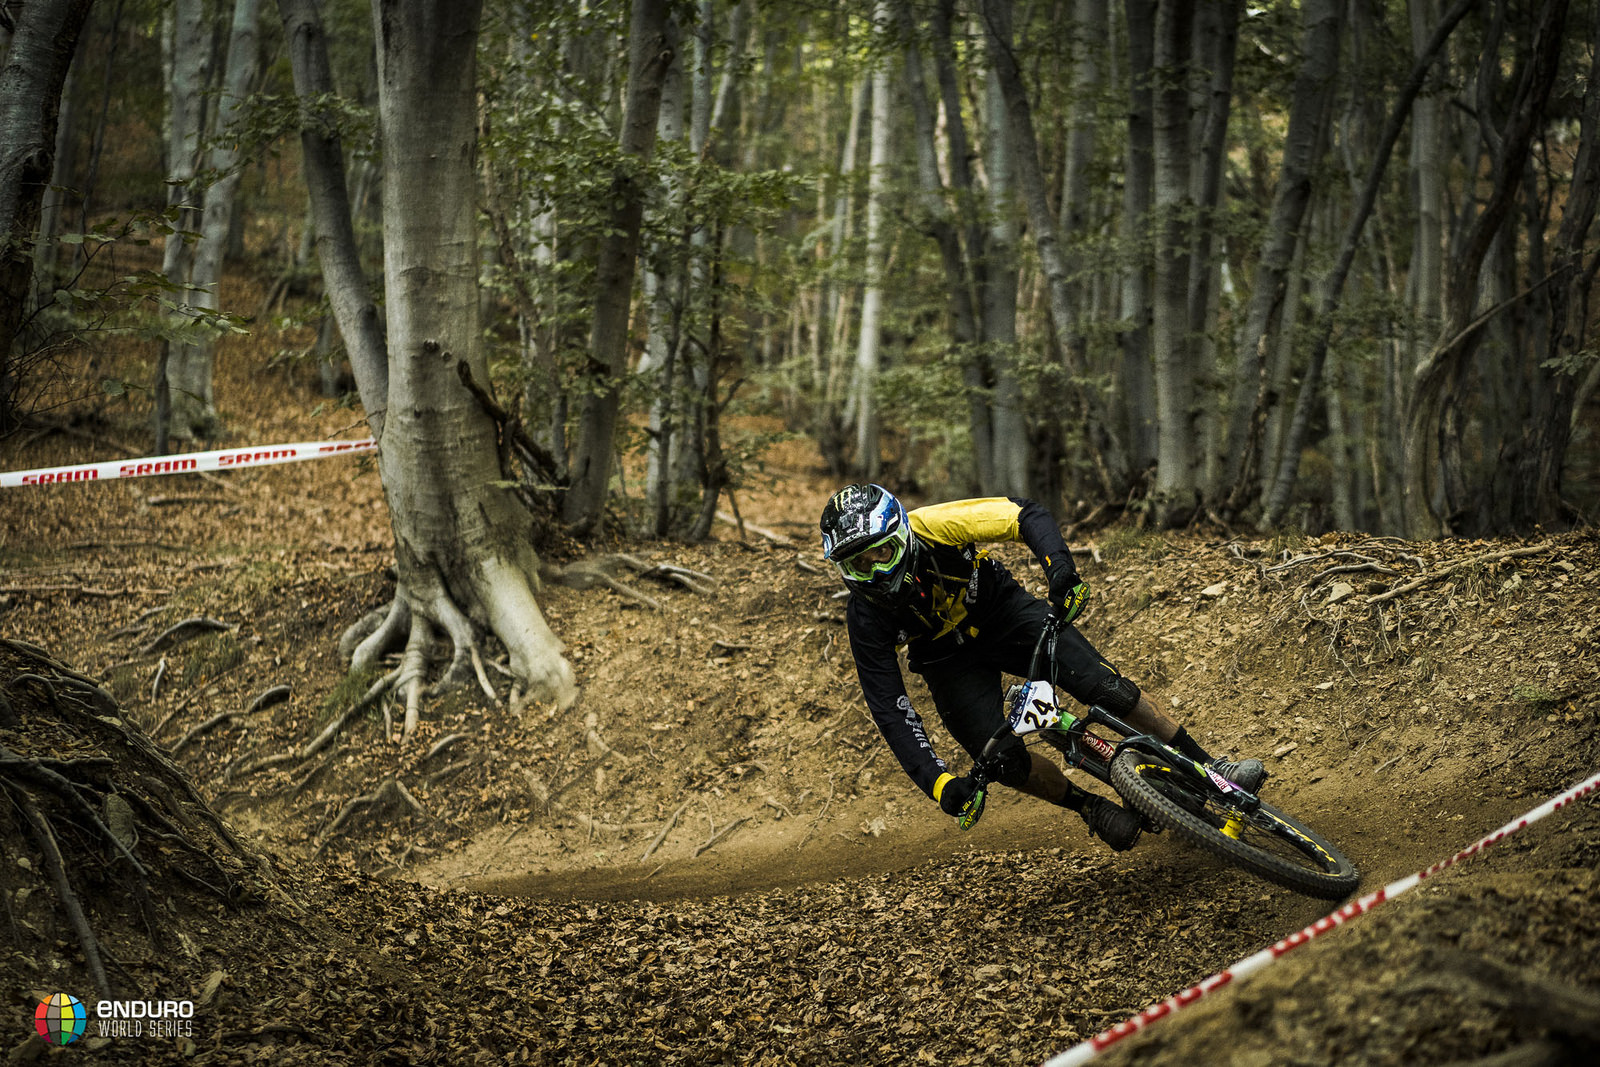 Sam Hill couldn't repeat his win from last weekend, but still took a very respectable 10th place.